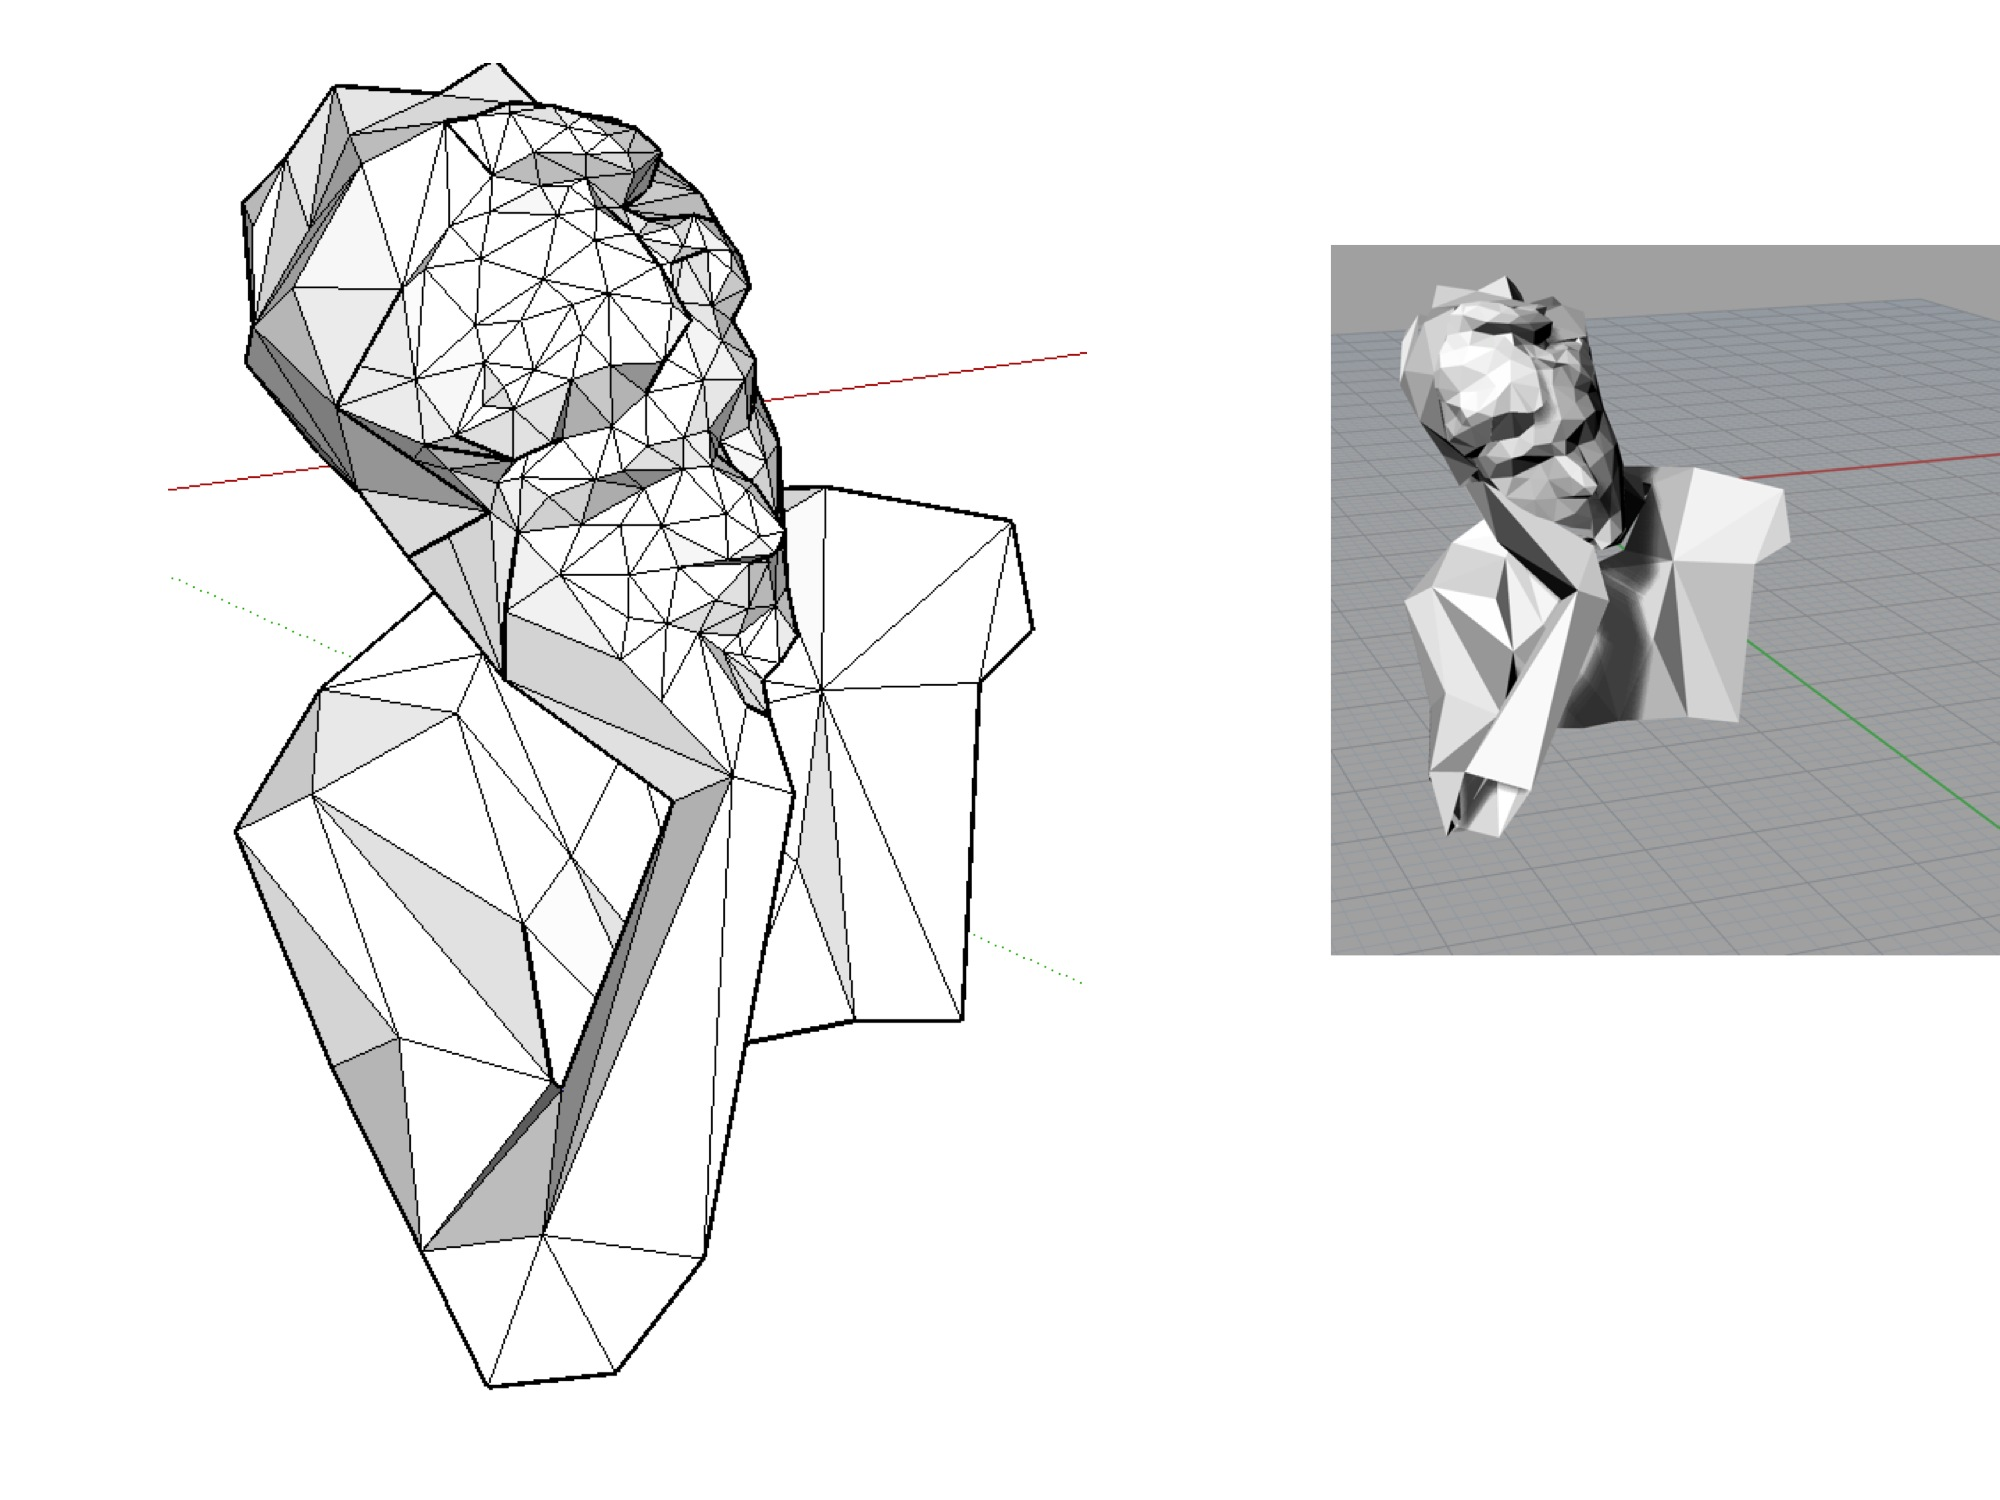 3d scan of Kieran, with reduced polygon mesh parts for cutting and assembly